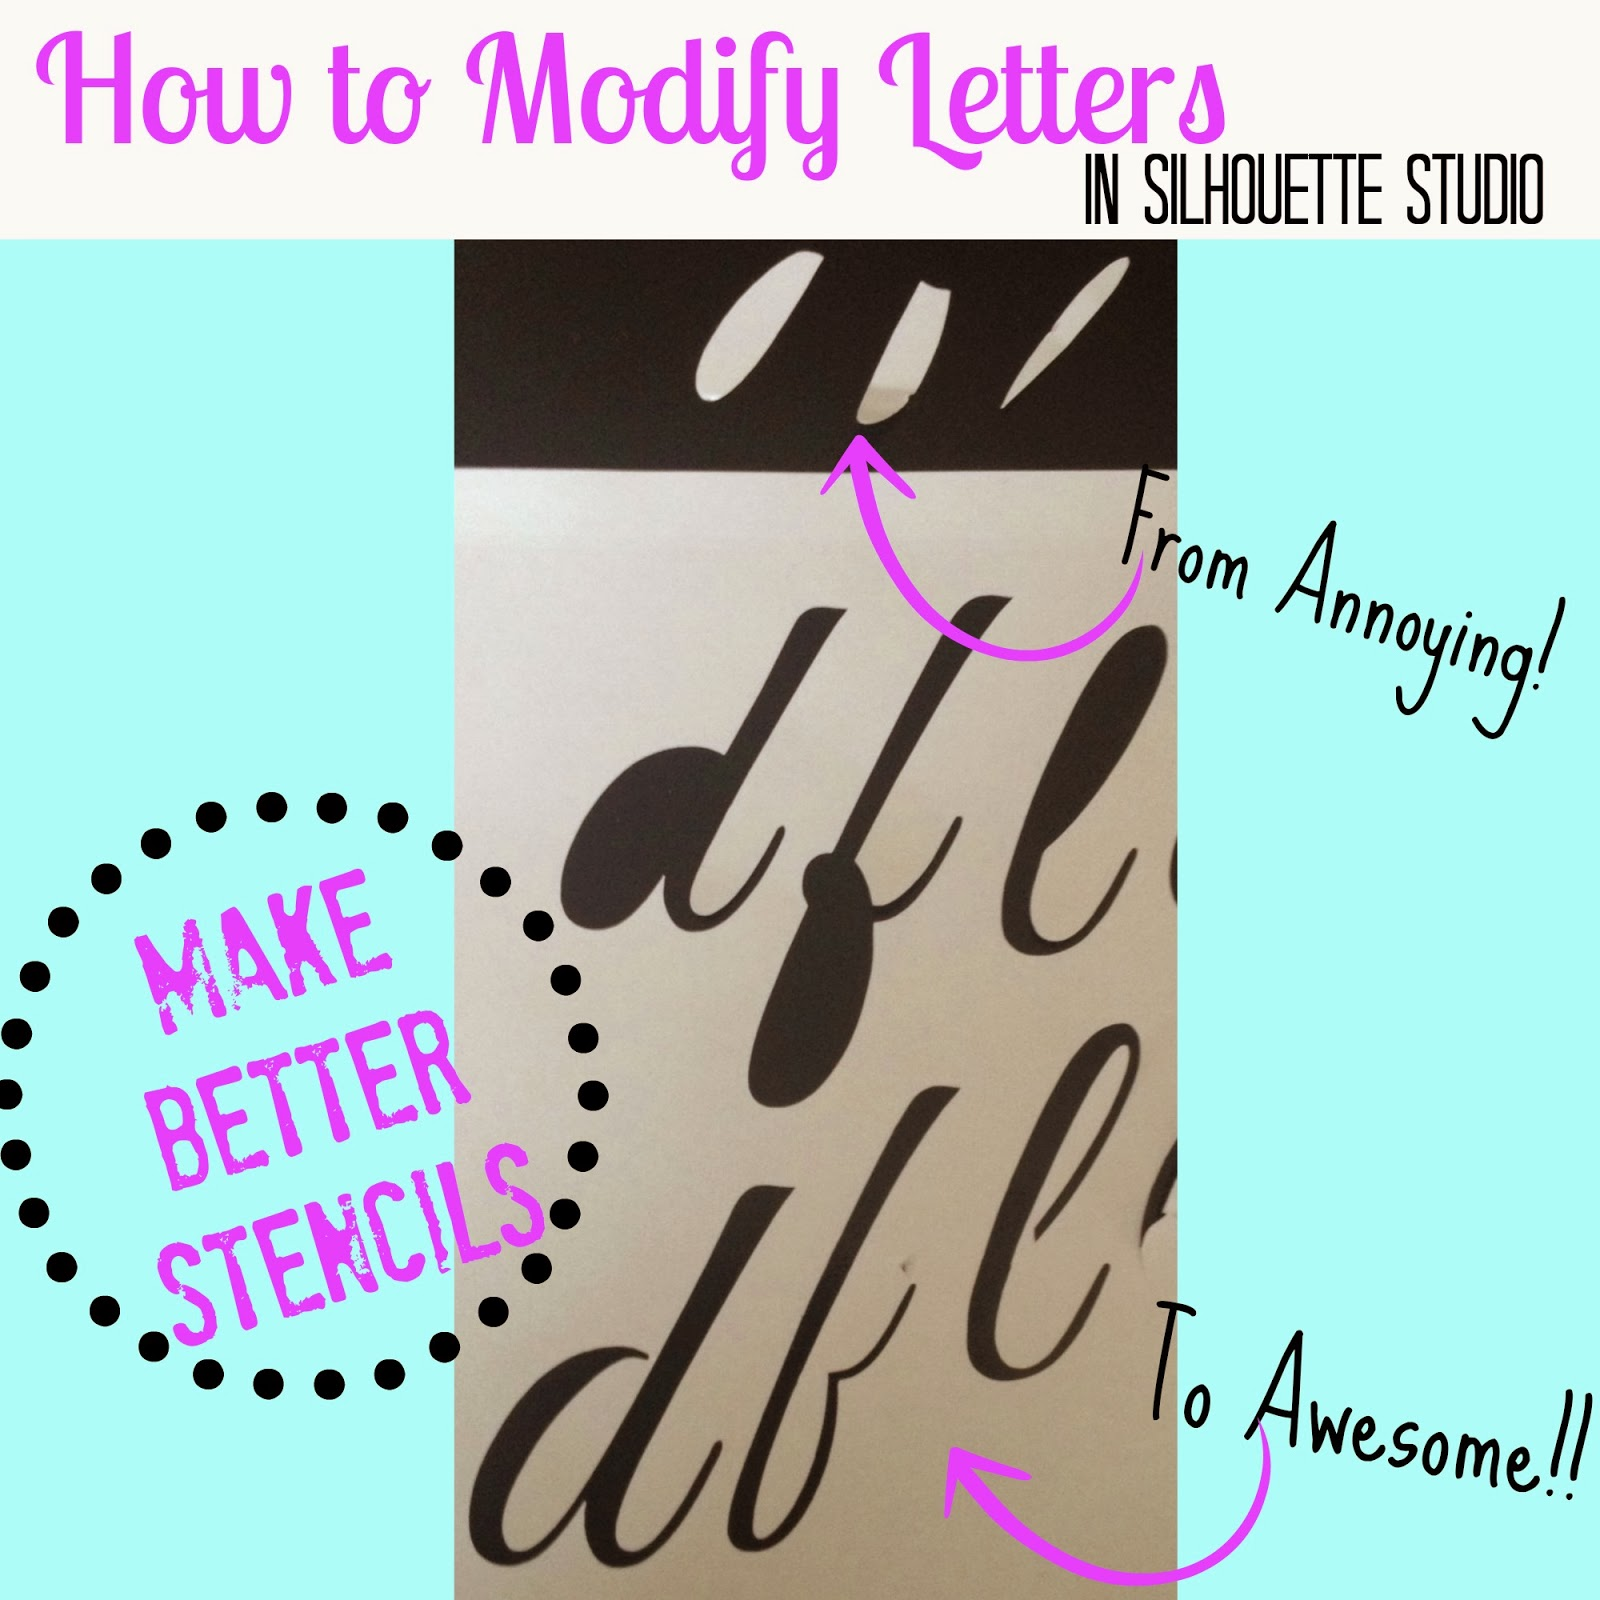 Modify, fonts, Silhouette tutorial, Silhouette Studio, eliminate middles